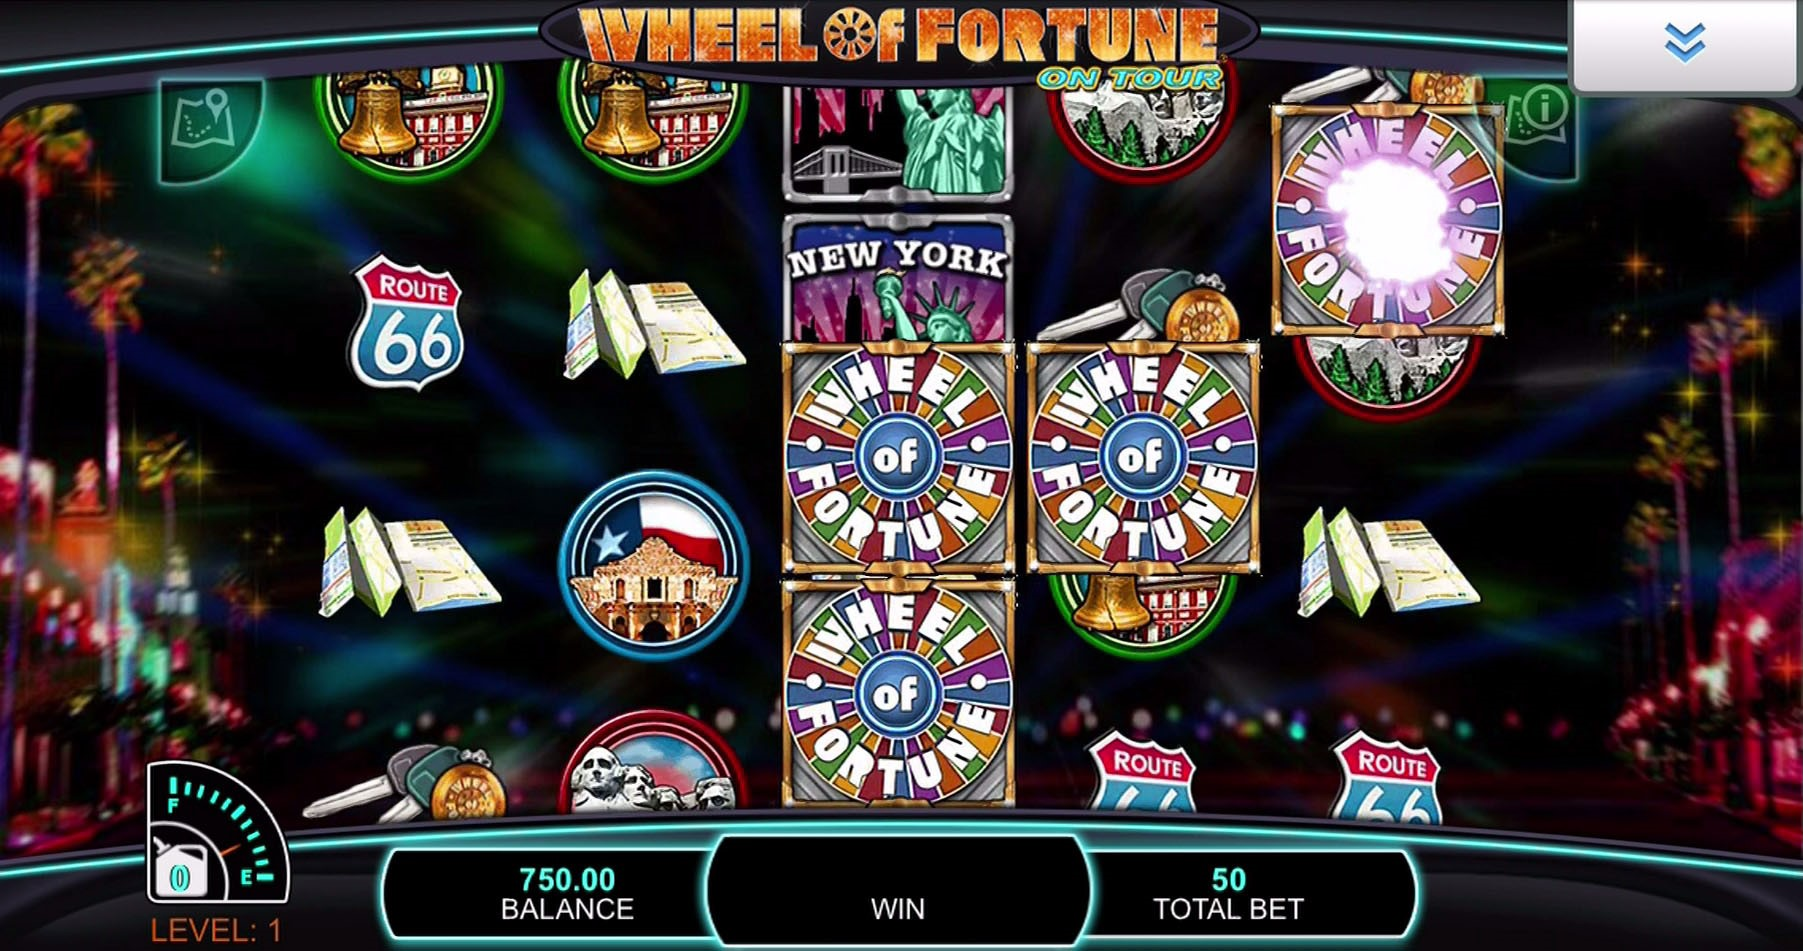 Mystery Wilds appear during Wheel of Fortune On Tour video slot game at PlayOJO